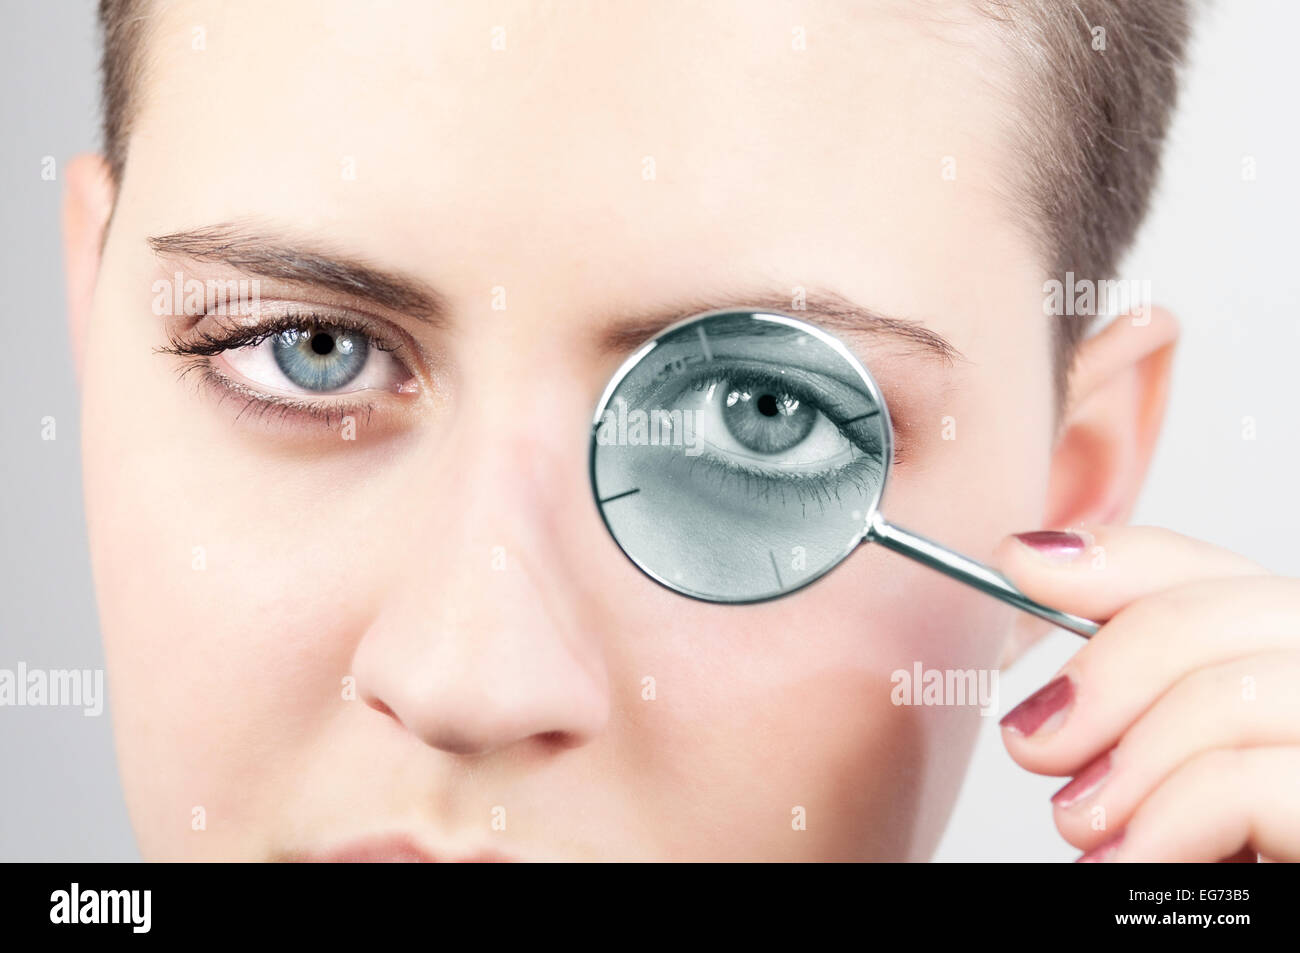 Girl with Optometrist Diopter Glasses - Stock Image